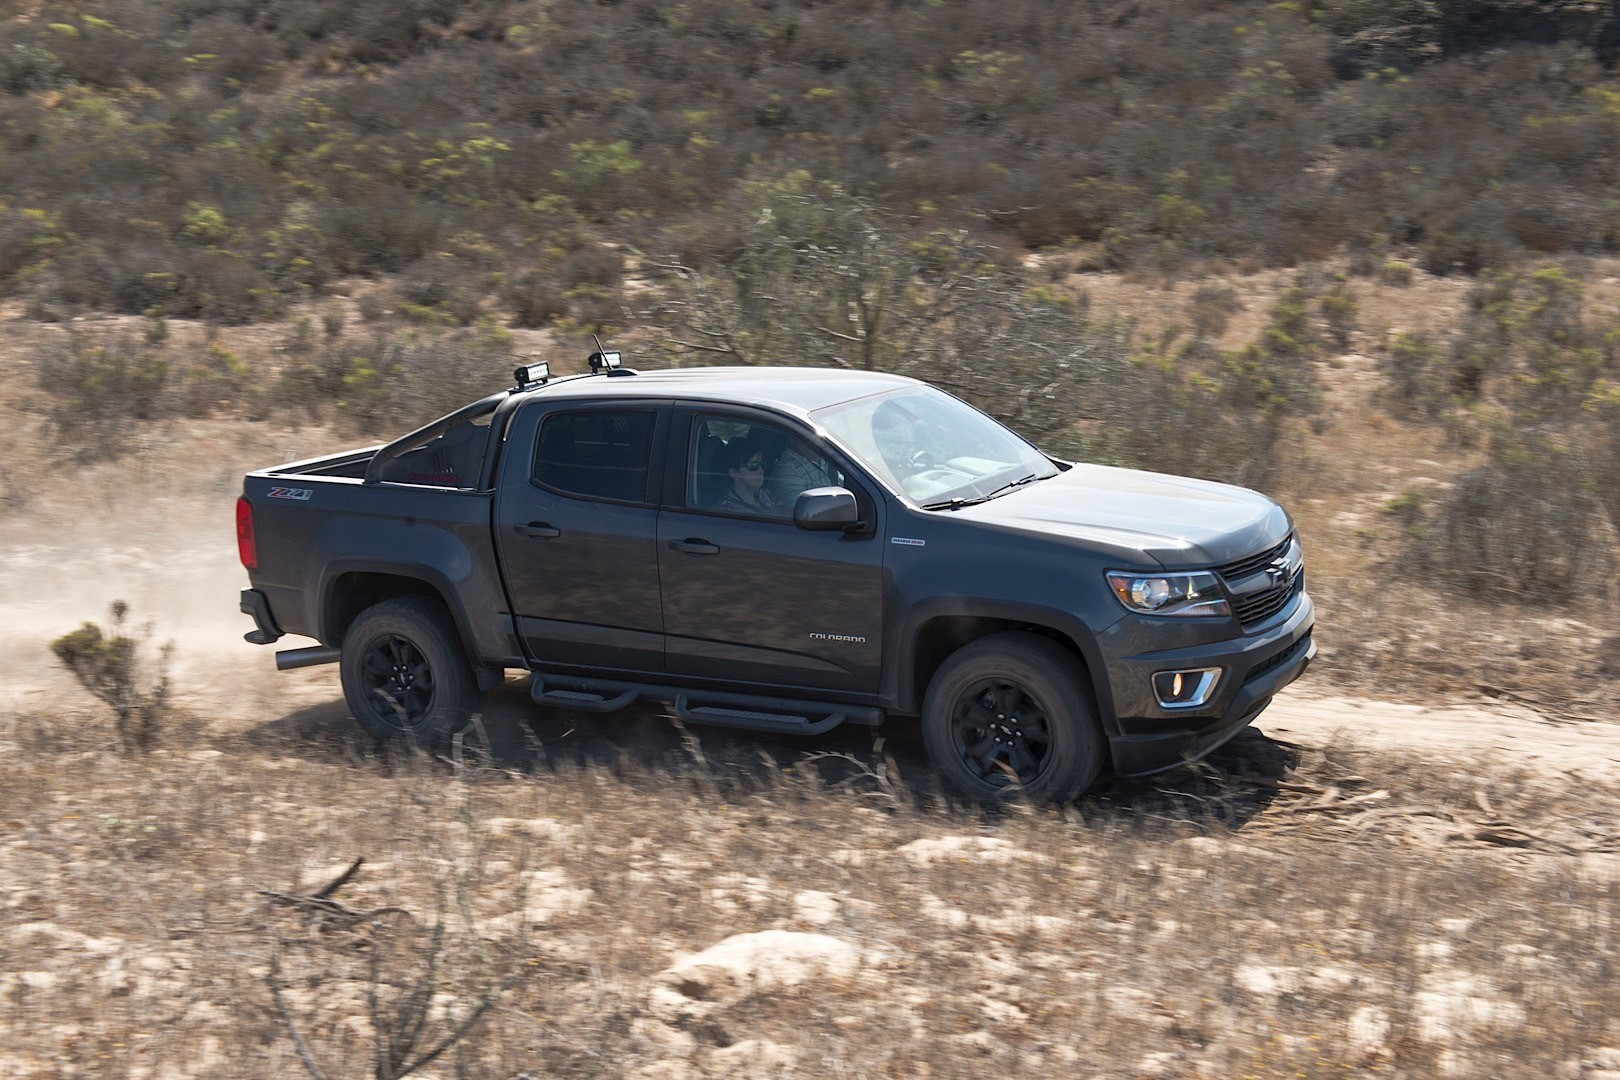 Gmc Canyon And Chevrolet Colorado Are America S Most